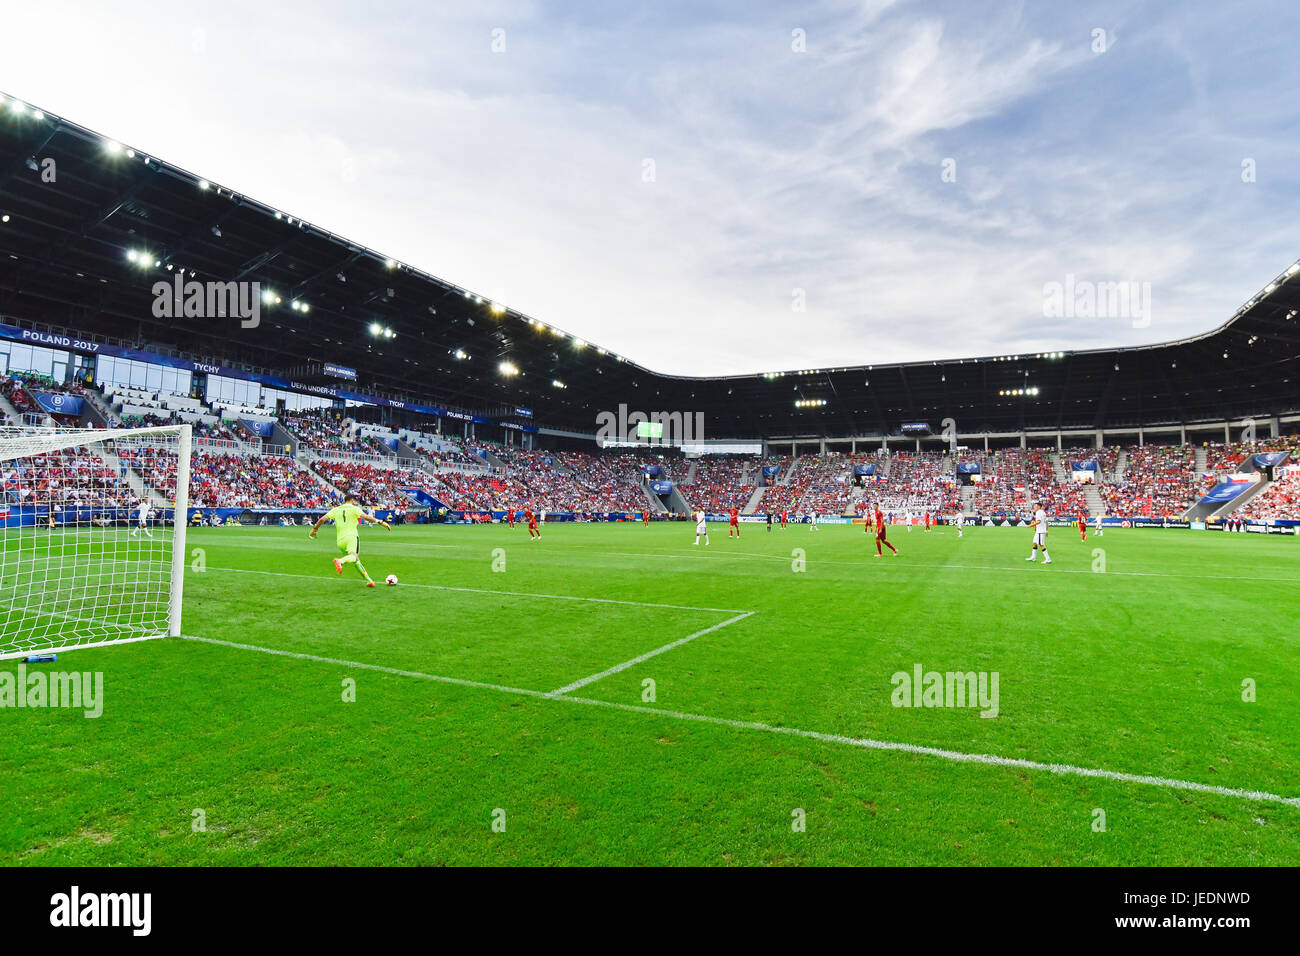 TYCHY, POLAND - JUNE 21, 2017: UEFA European Under-21 Championship  match group C between Czech Republic - Italy Stock Photo